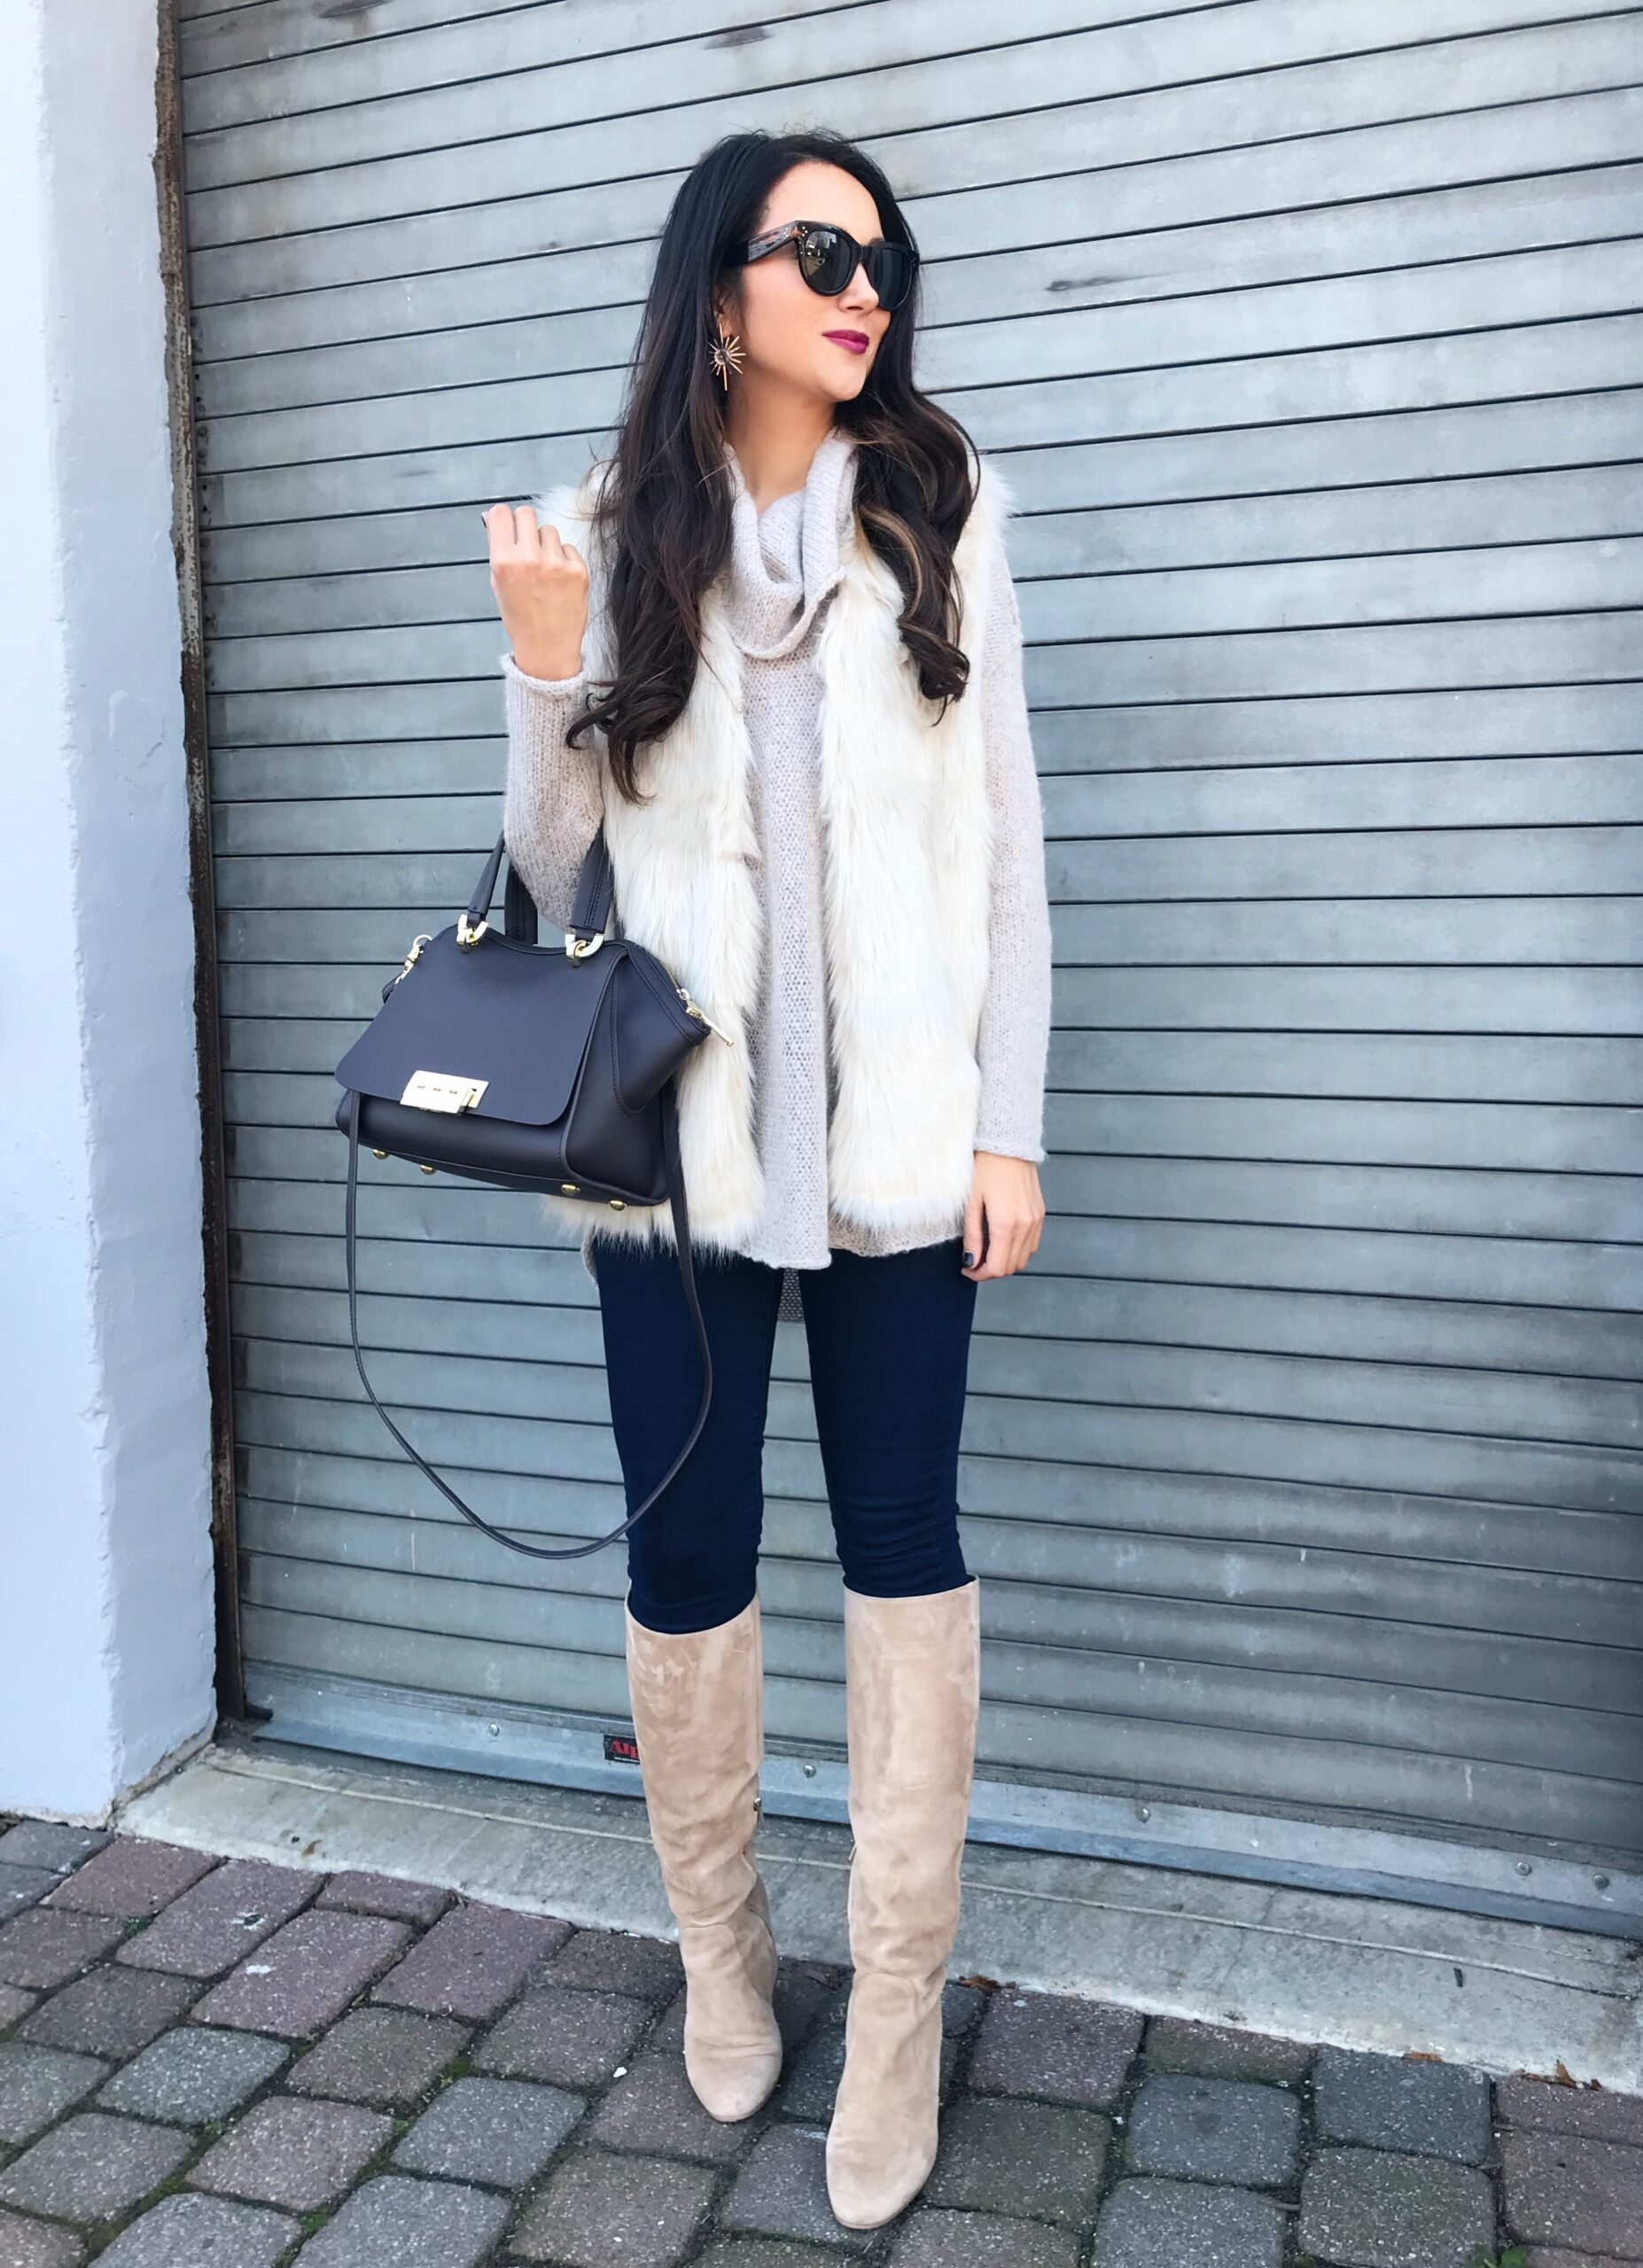 anna monteiro of blushing rose style wearing knee high boots and faux fur vest in 3 must have boot styles to own this season